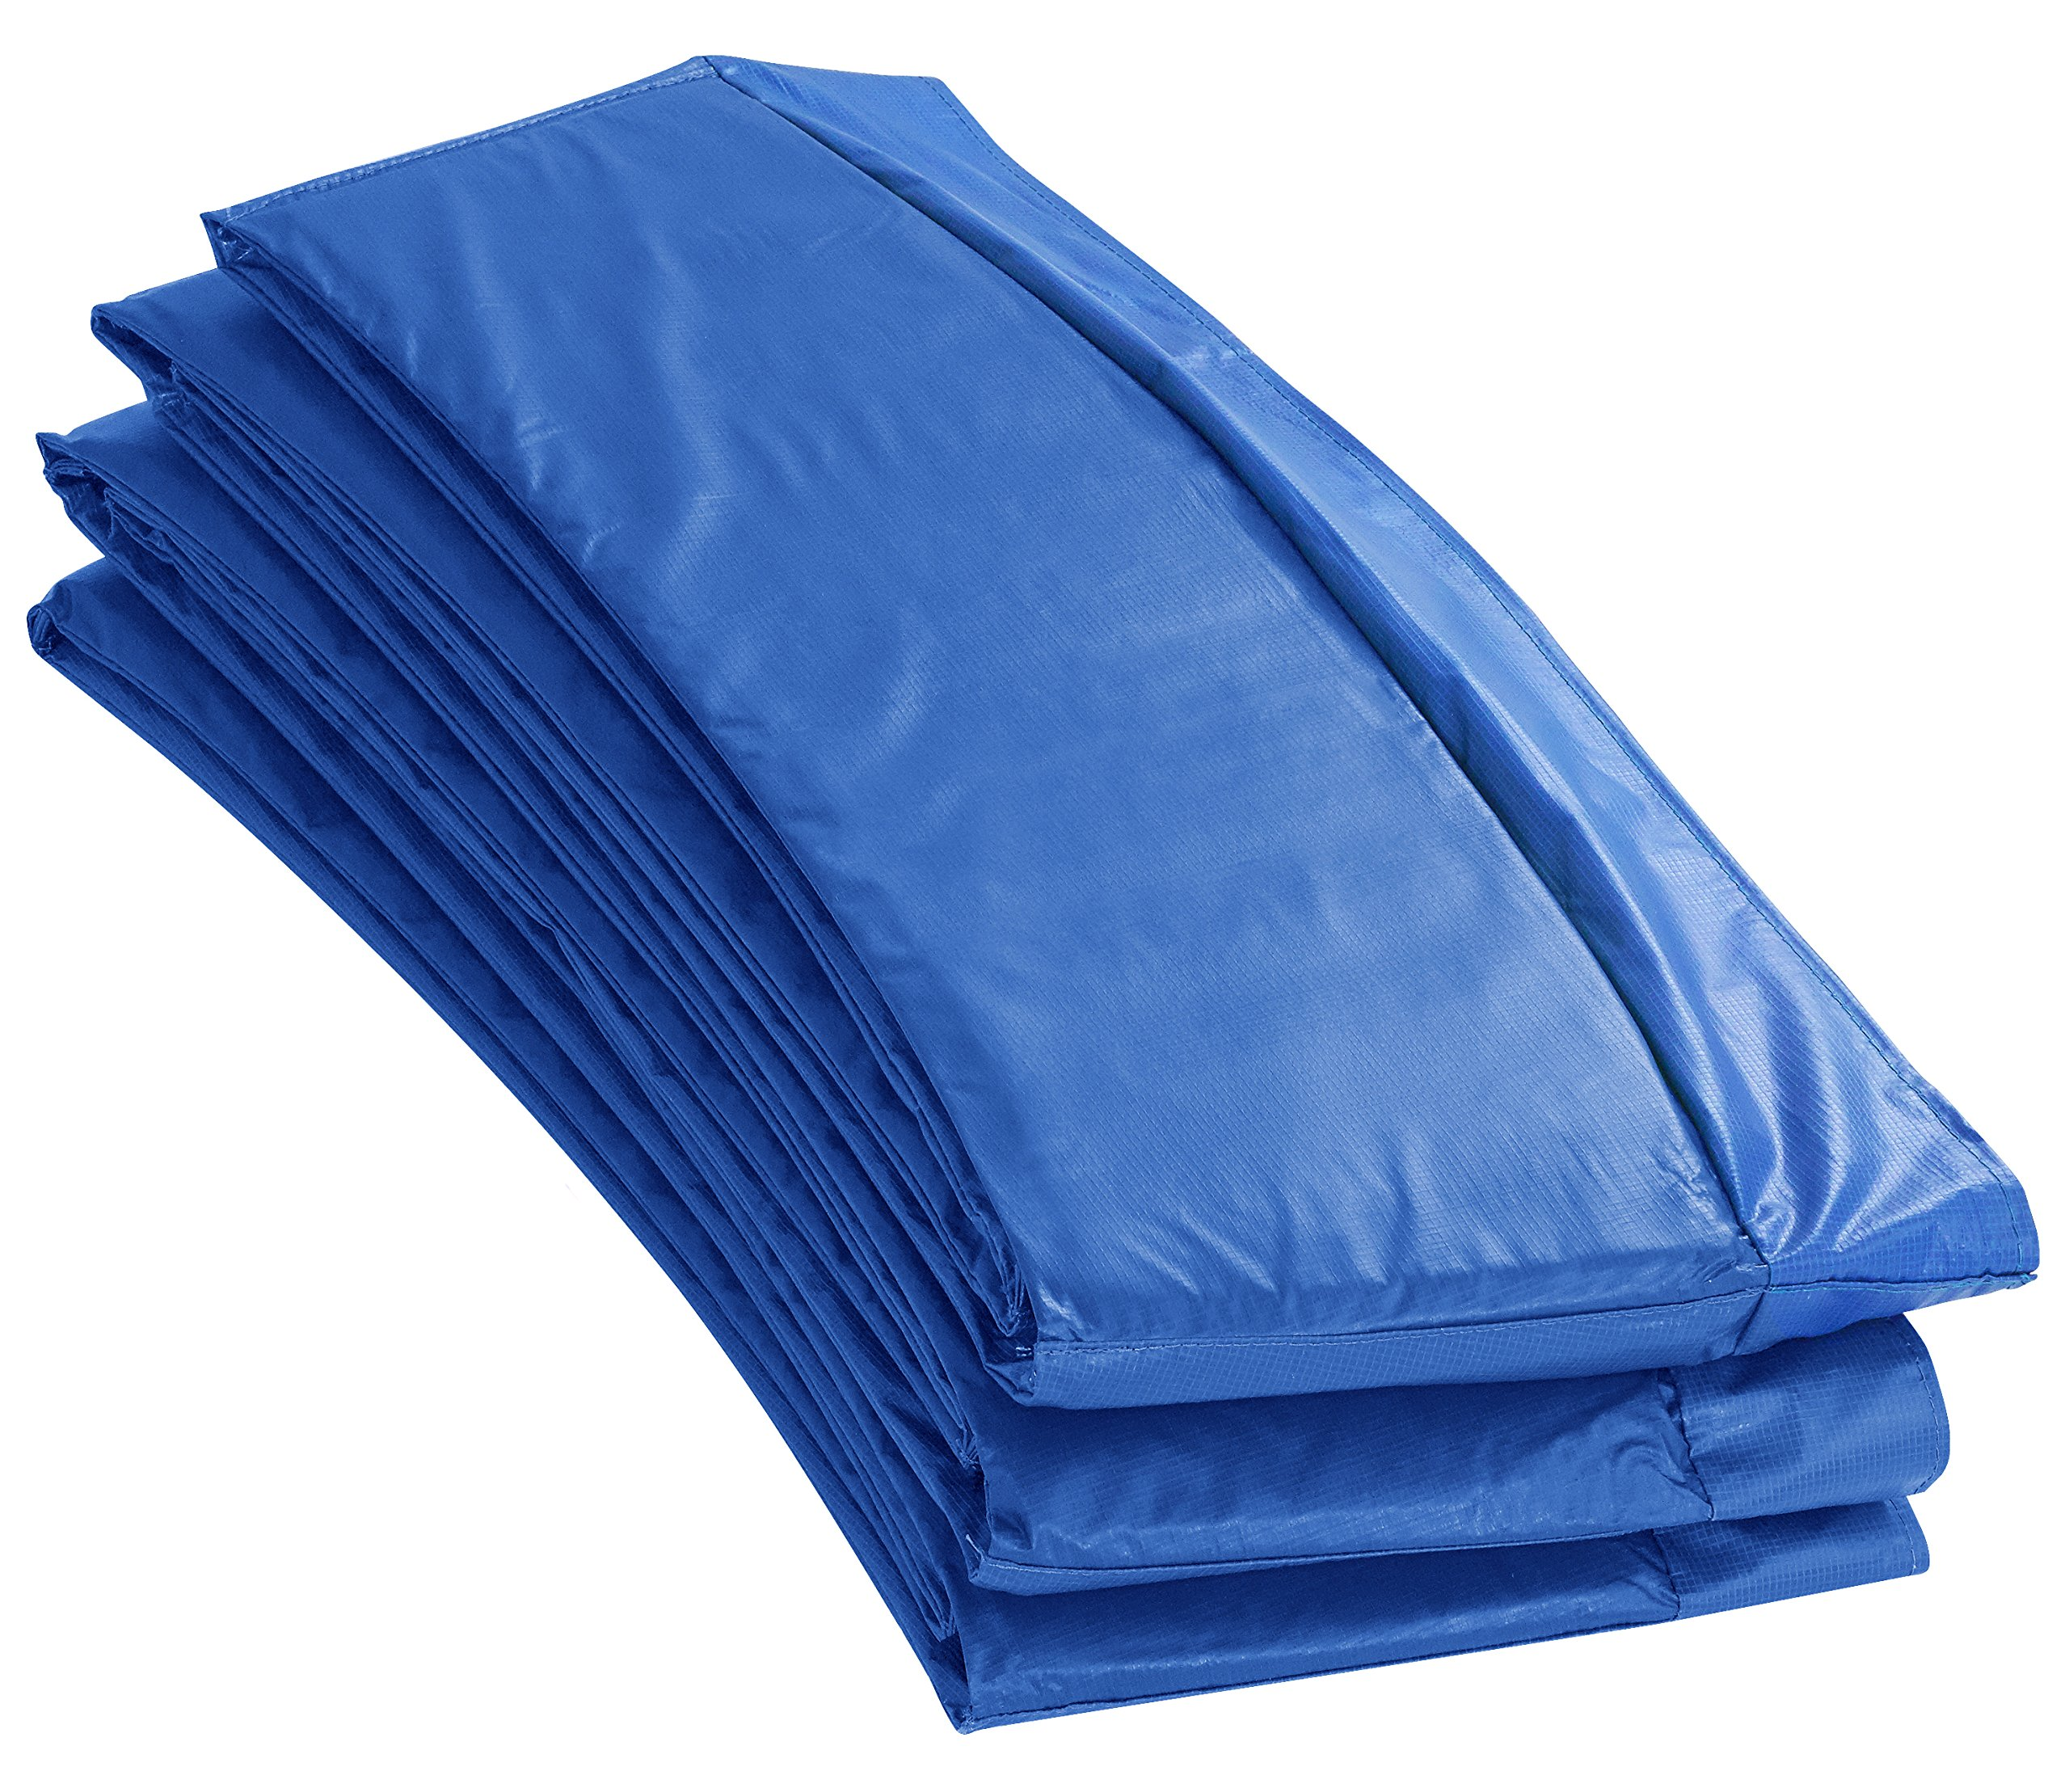 10' Super Trampoline Safety Pad (Spring Cover) Fits for 10 FT. Round Trampoline Frames. 10'' wide - Blue